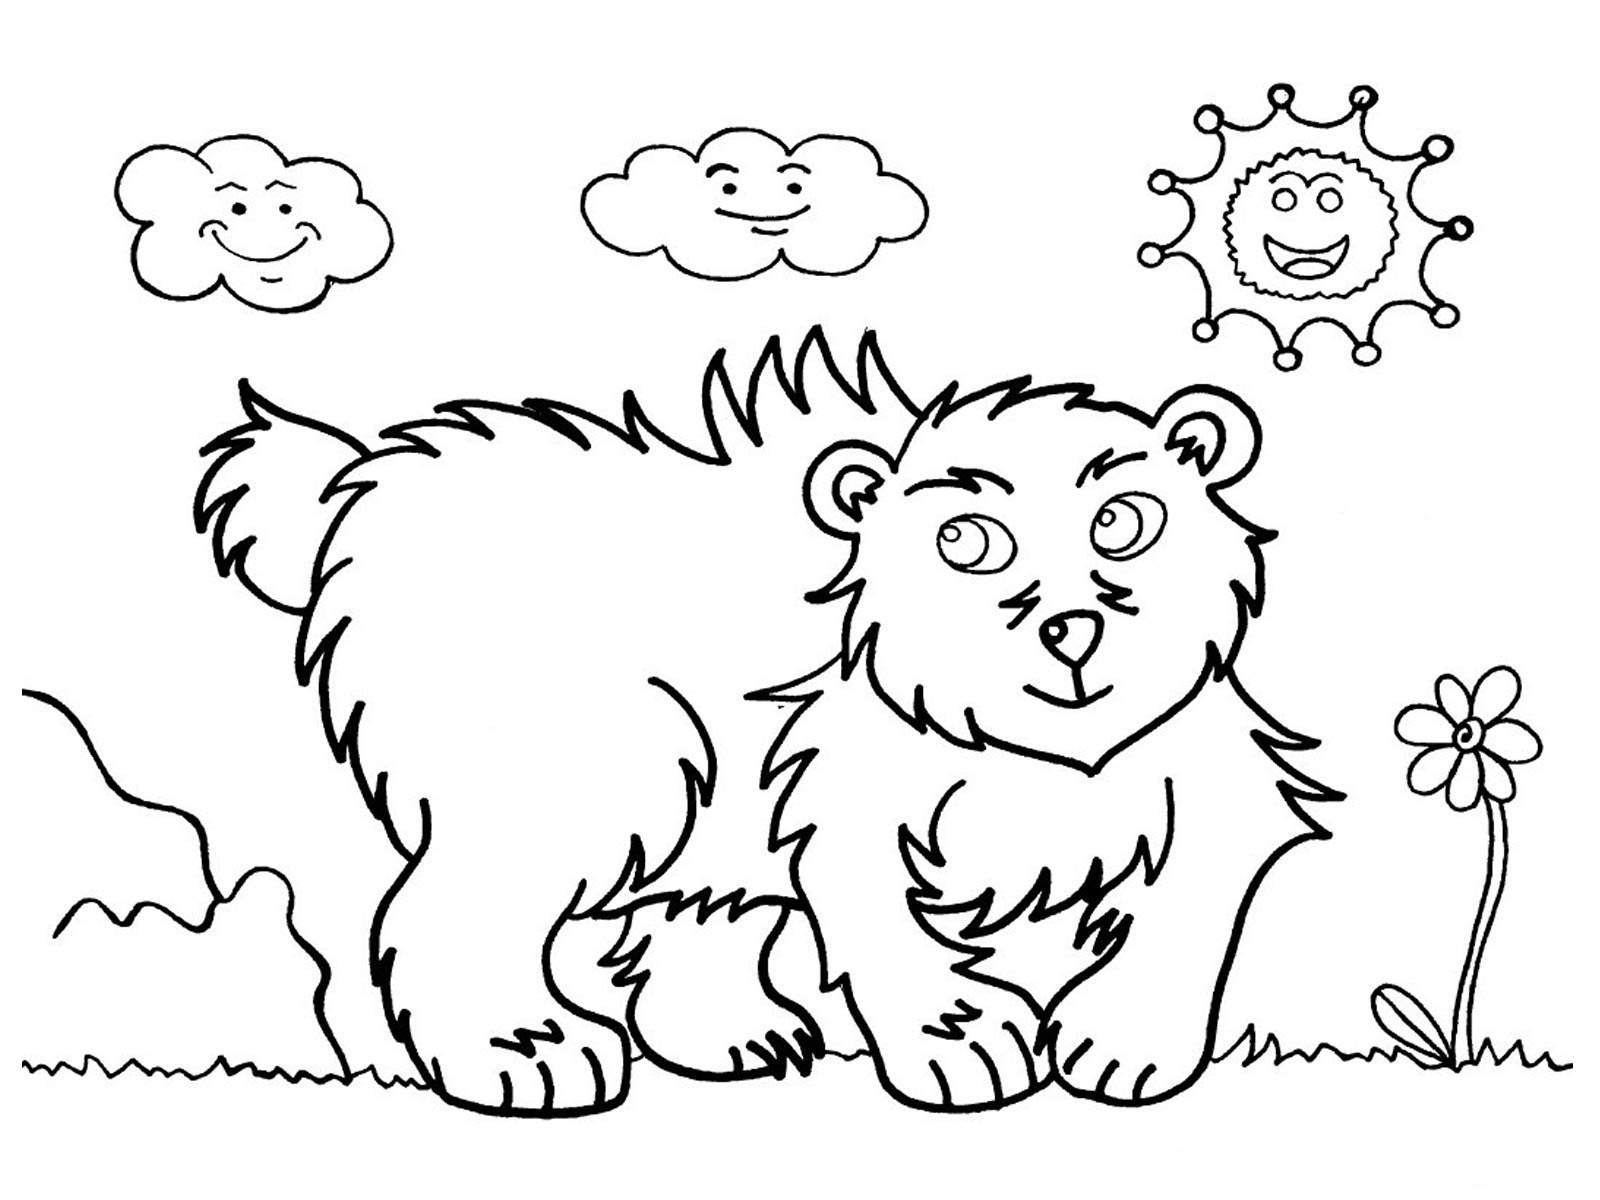 kids coloring pages bear - photo#27